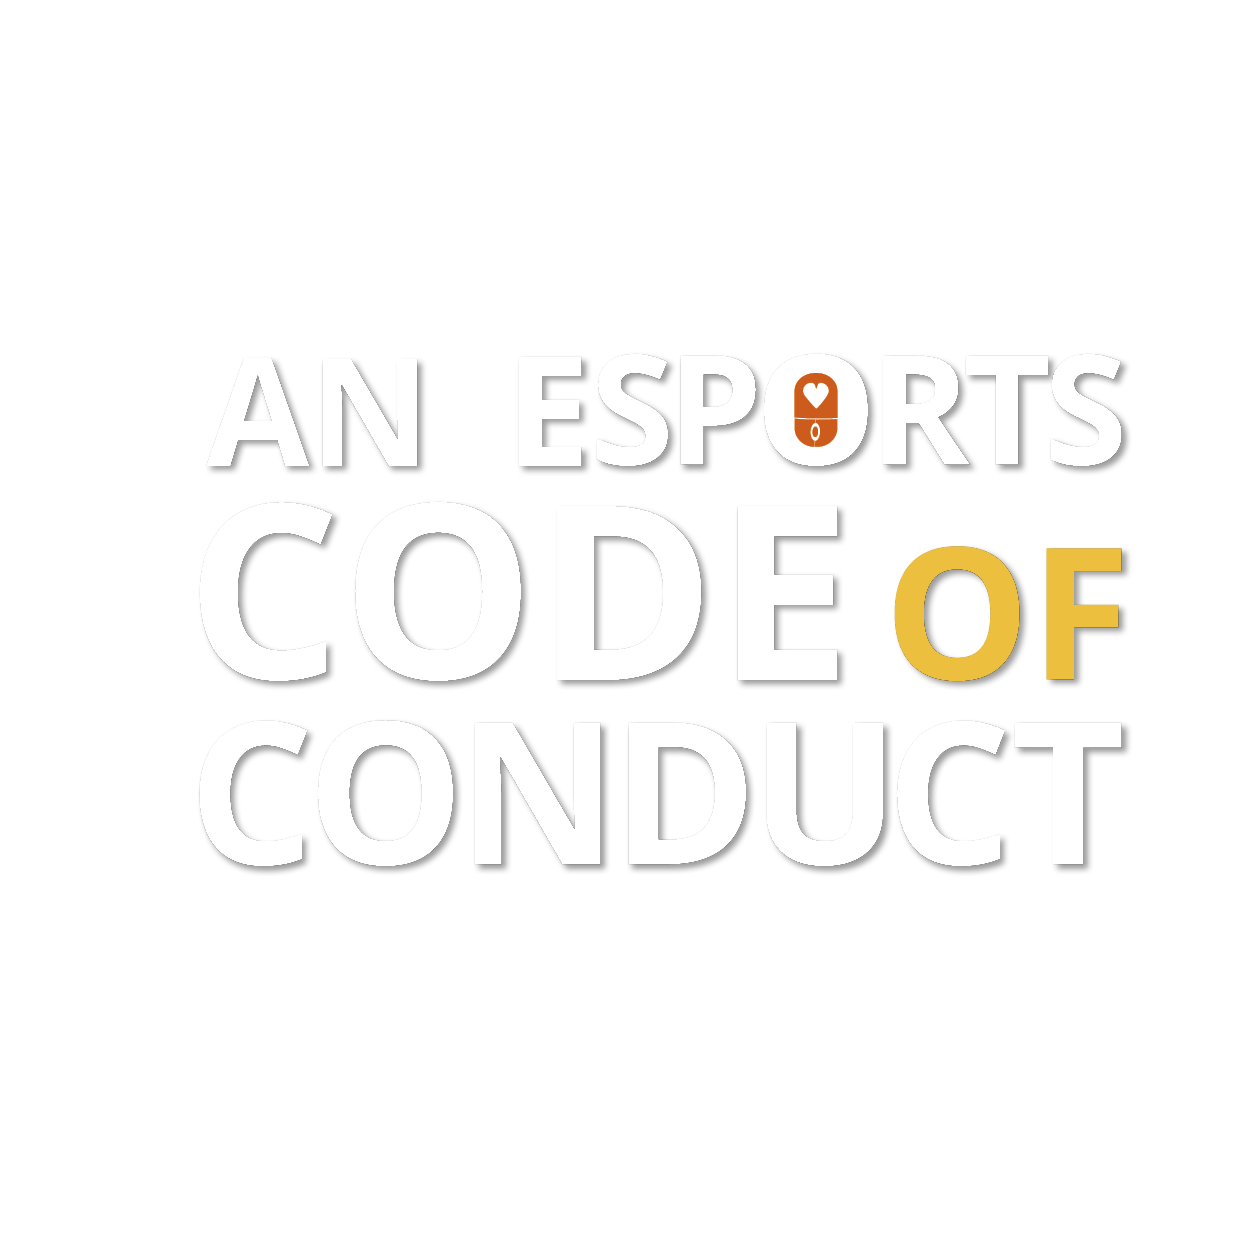 An esports Code of Conduct